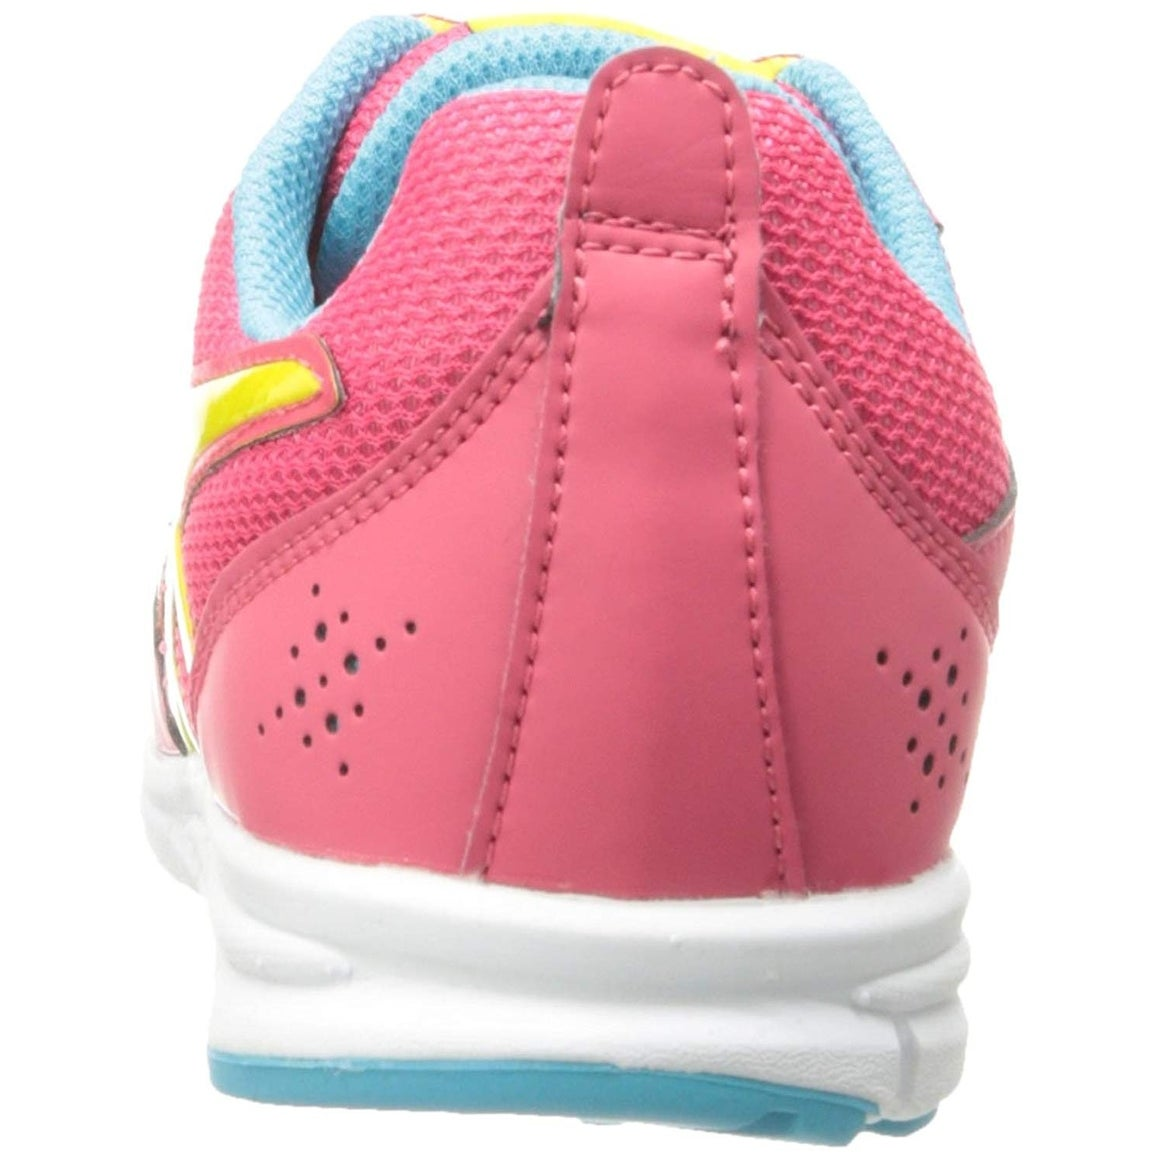 Kids ASICS Girls LIL MUSE FIT Fabric Low Top Lace Up Running Sneaker 6 M US Big Kid